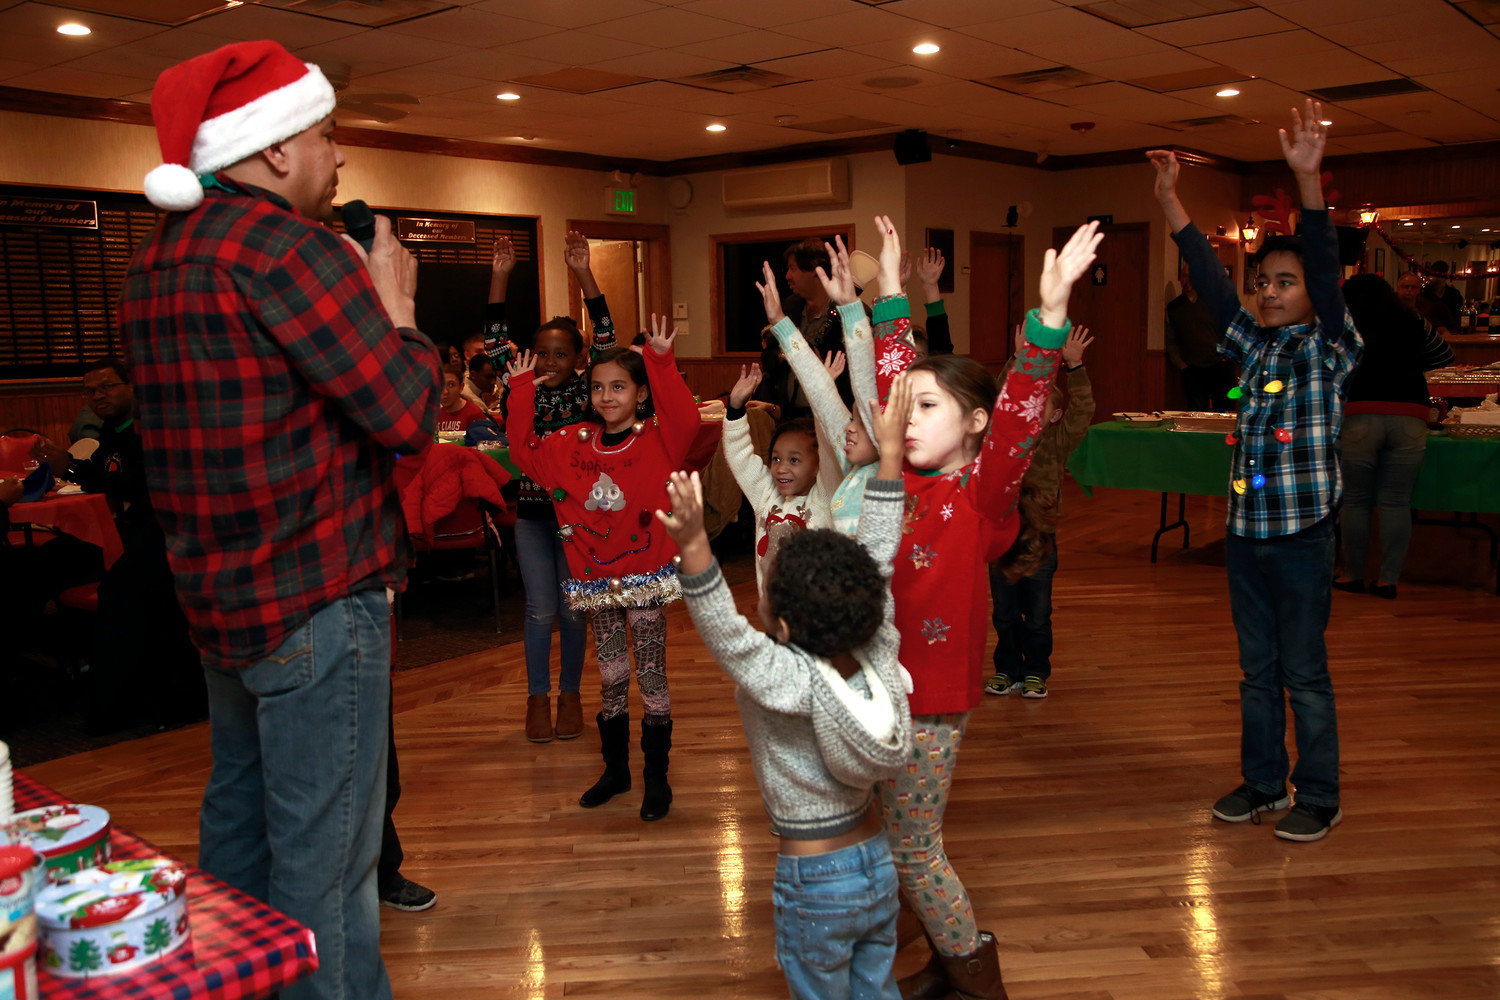 Sgt. 1st Class Enrique Reyna led children in a game of Simon Says while they waited to meet Santa Claus at the East Meadow Benevolent Hall on Dec. 21.